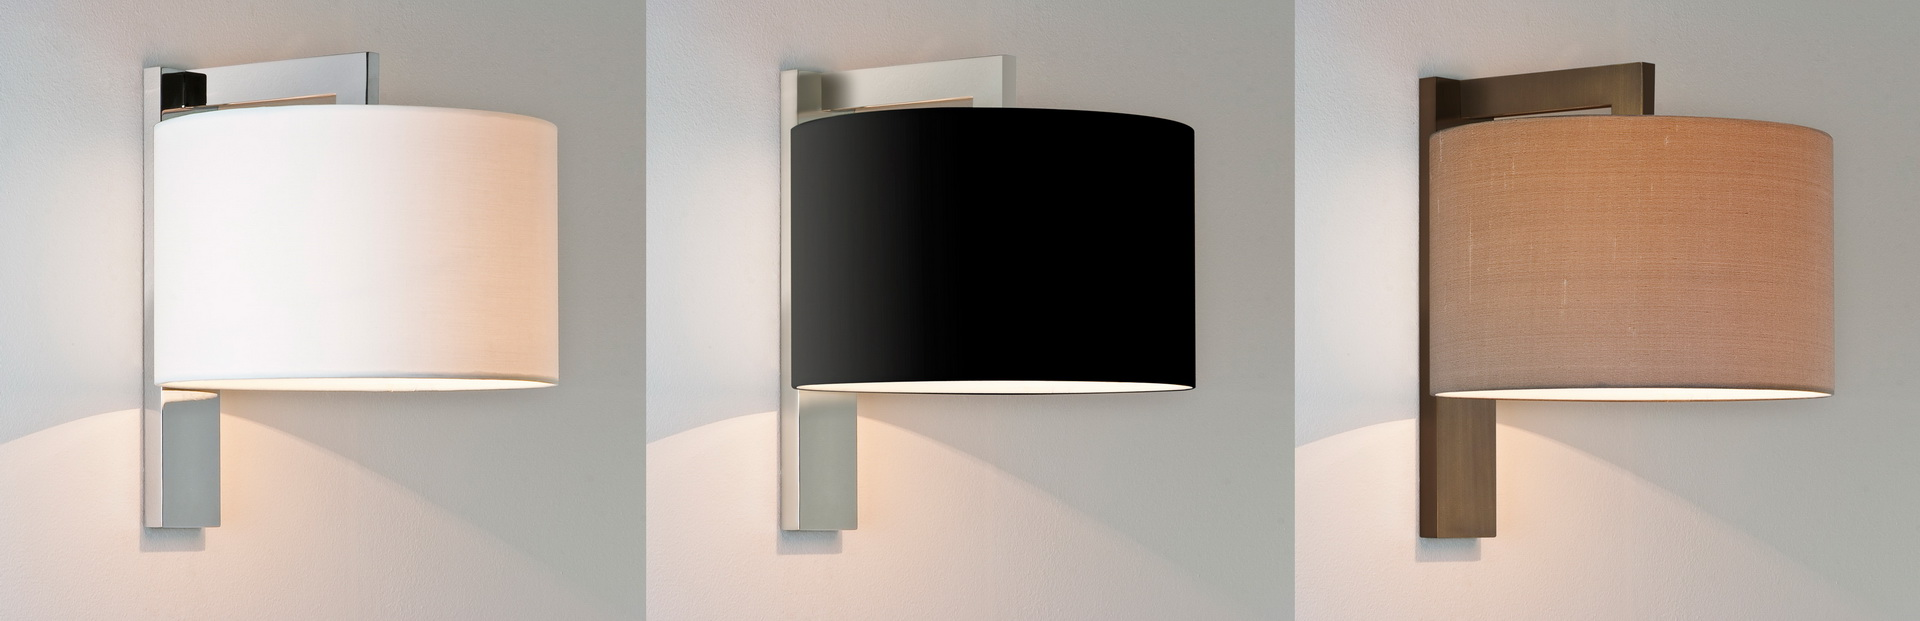 Wall Lamps Indoor : Wall lights indoor - Invite more light in into your home Warisan Lighting